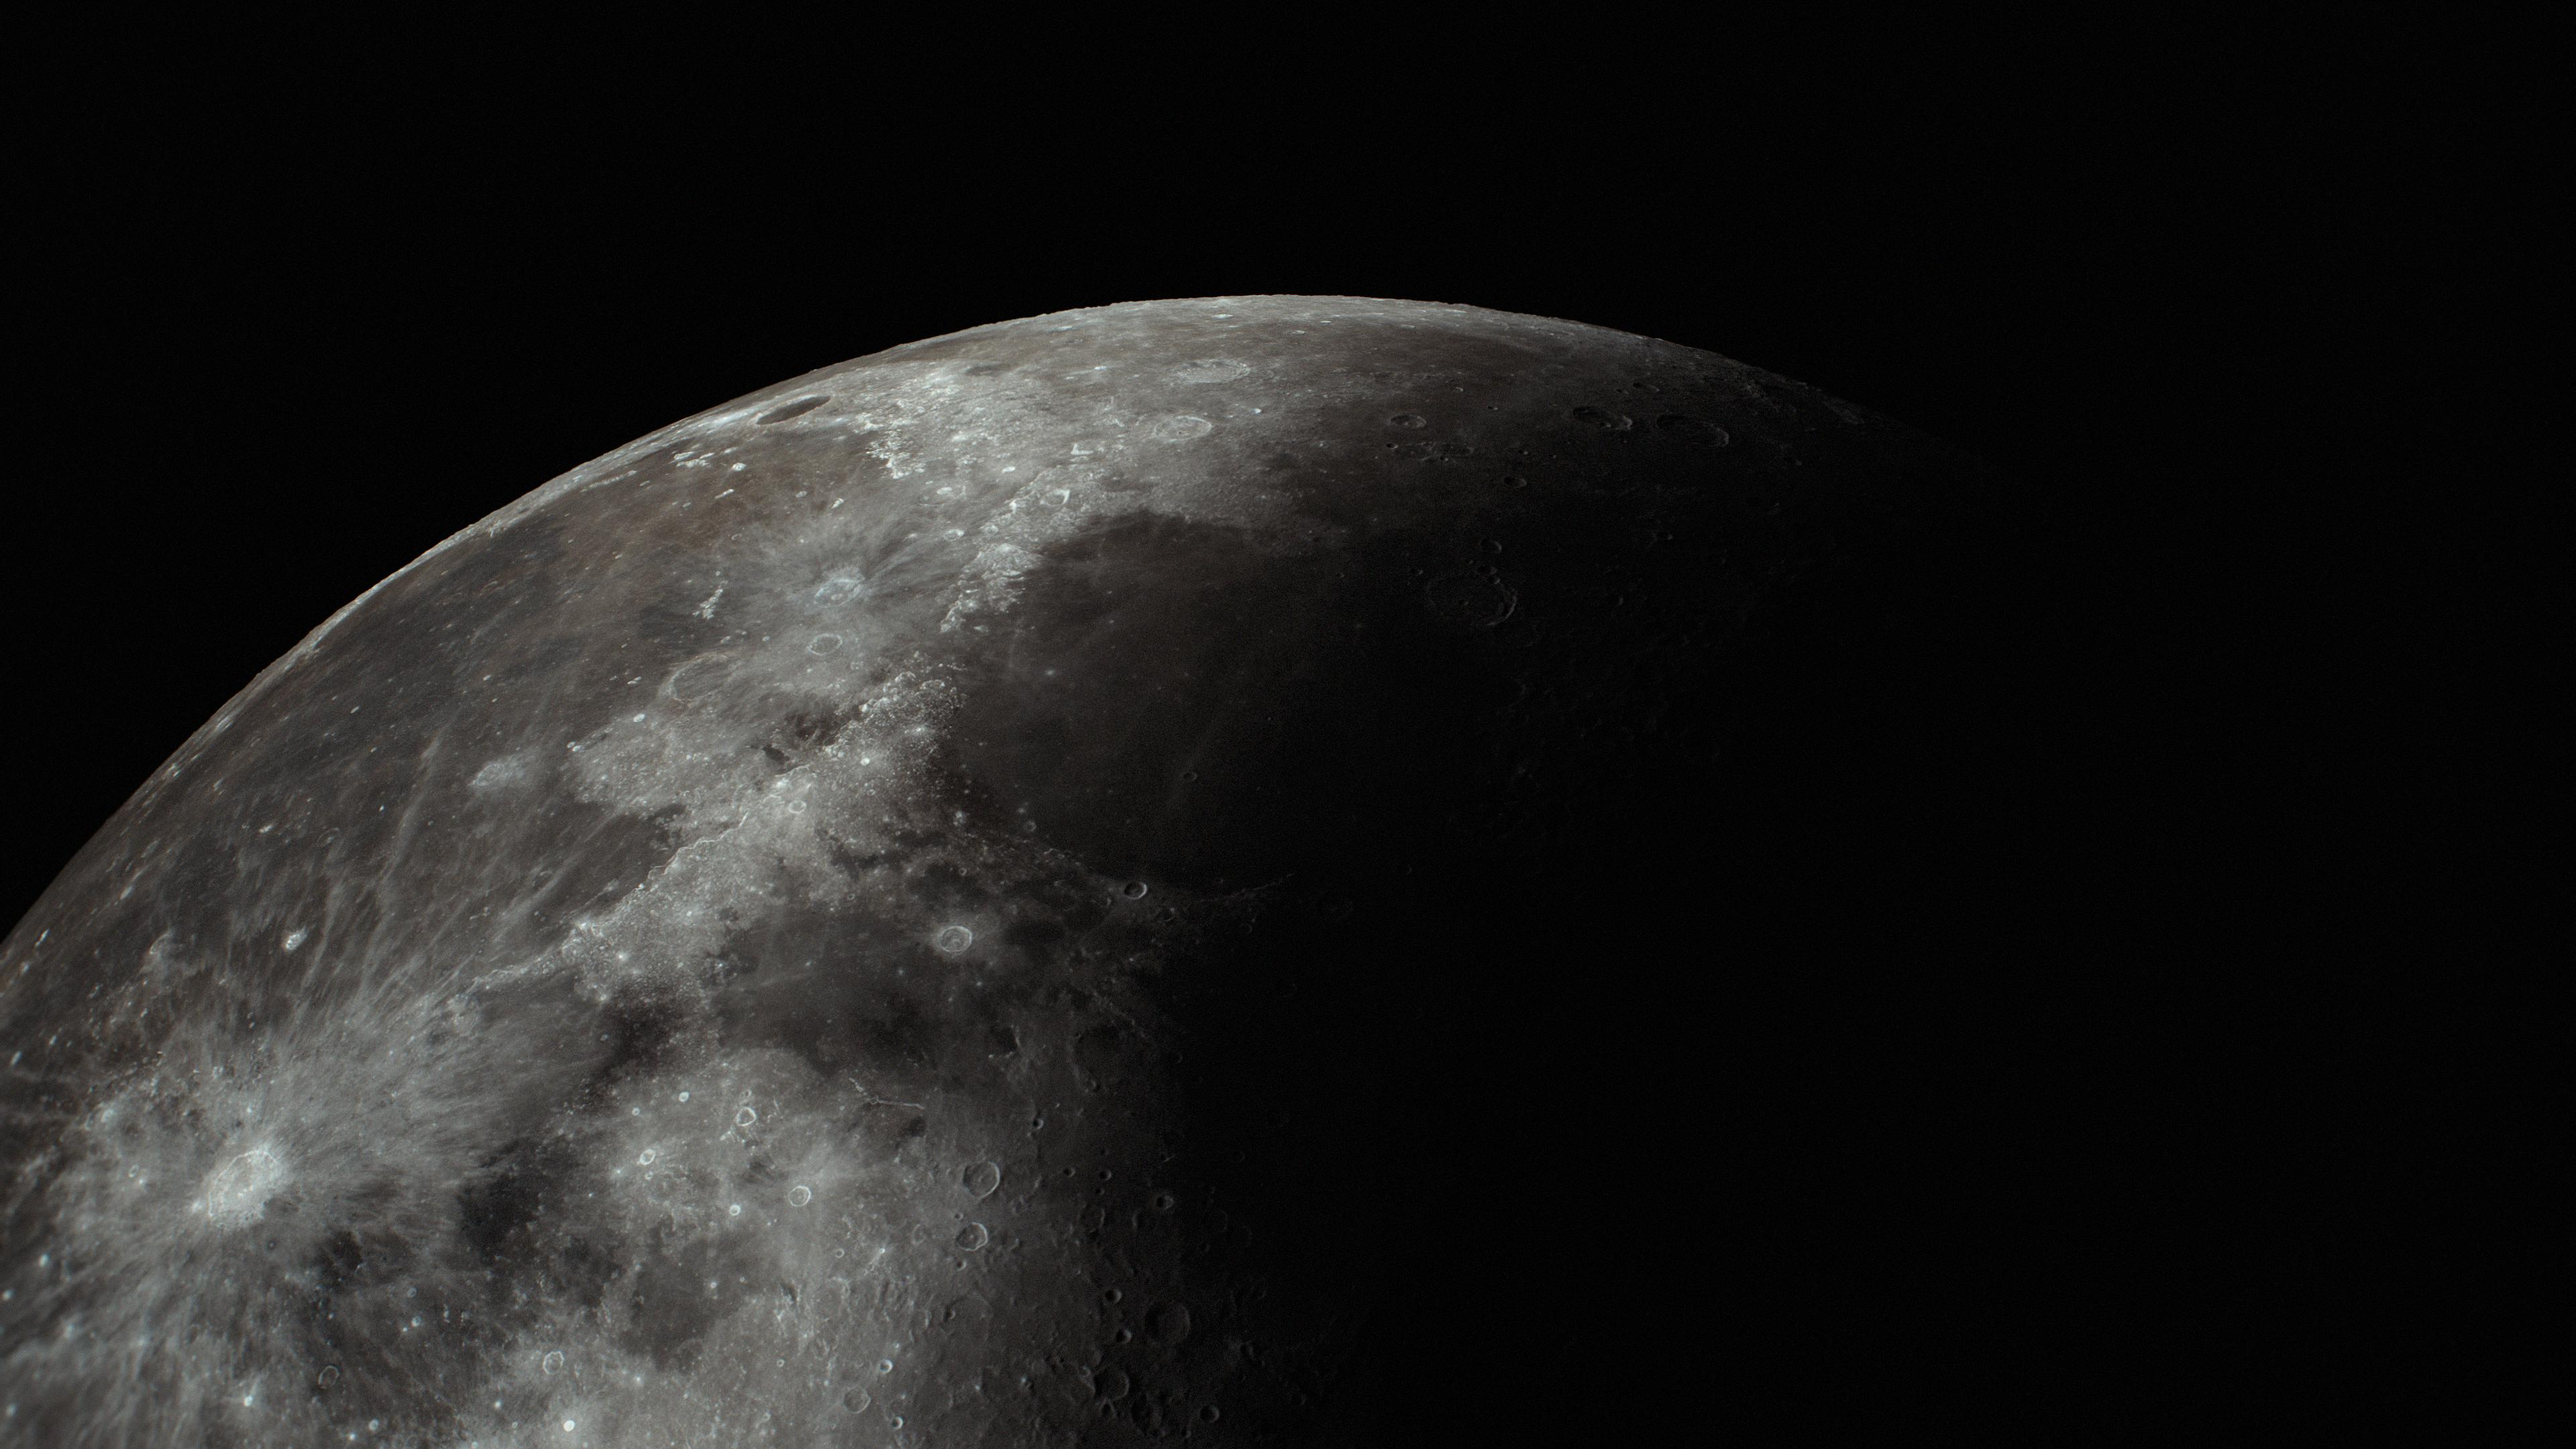 Moon 4k Wallpapers For Your Desktop Or Mobile Screen Free And Easy To Download